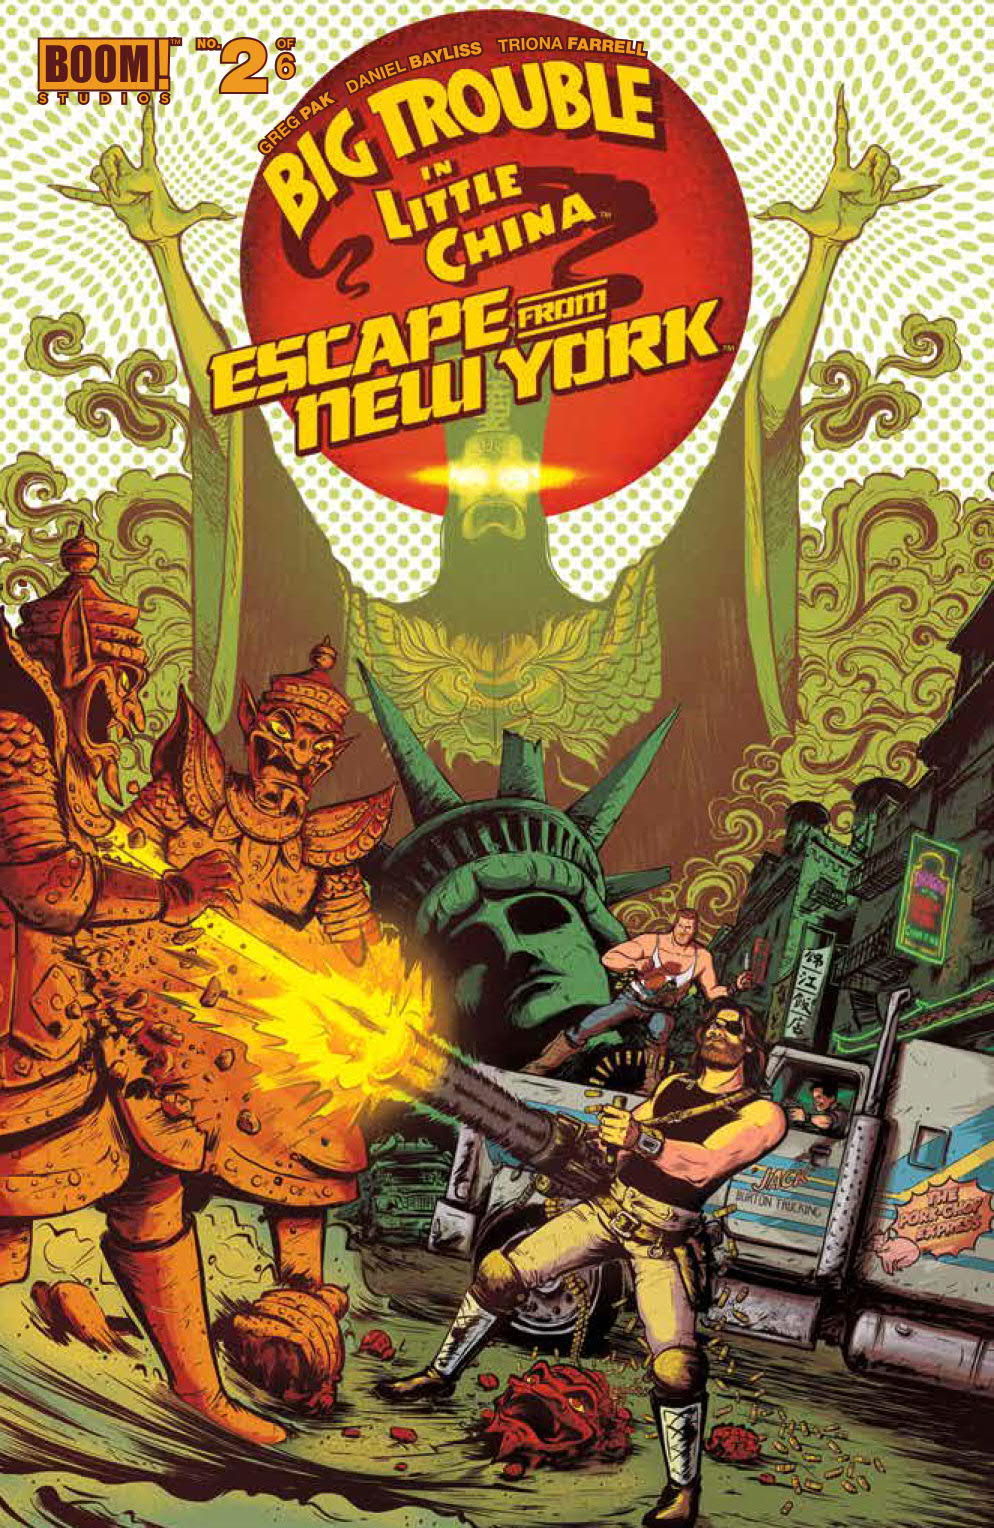 img - Review - Big Trouble in Little China / Escape From New York #2